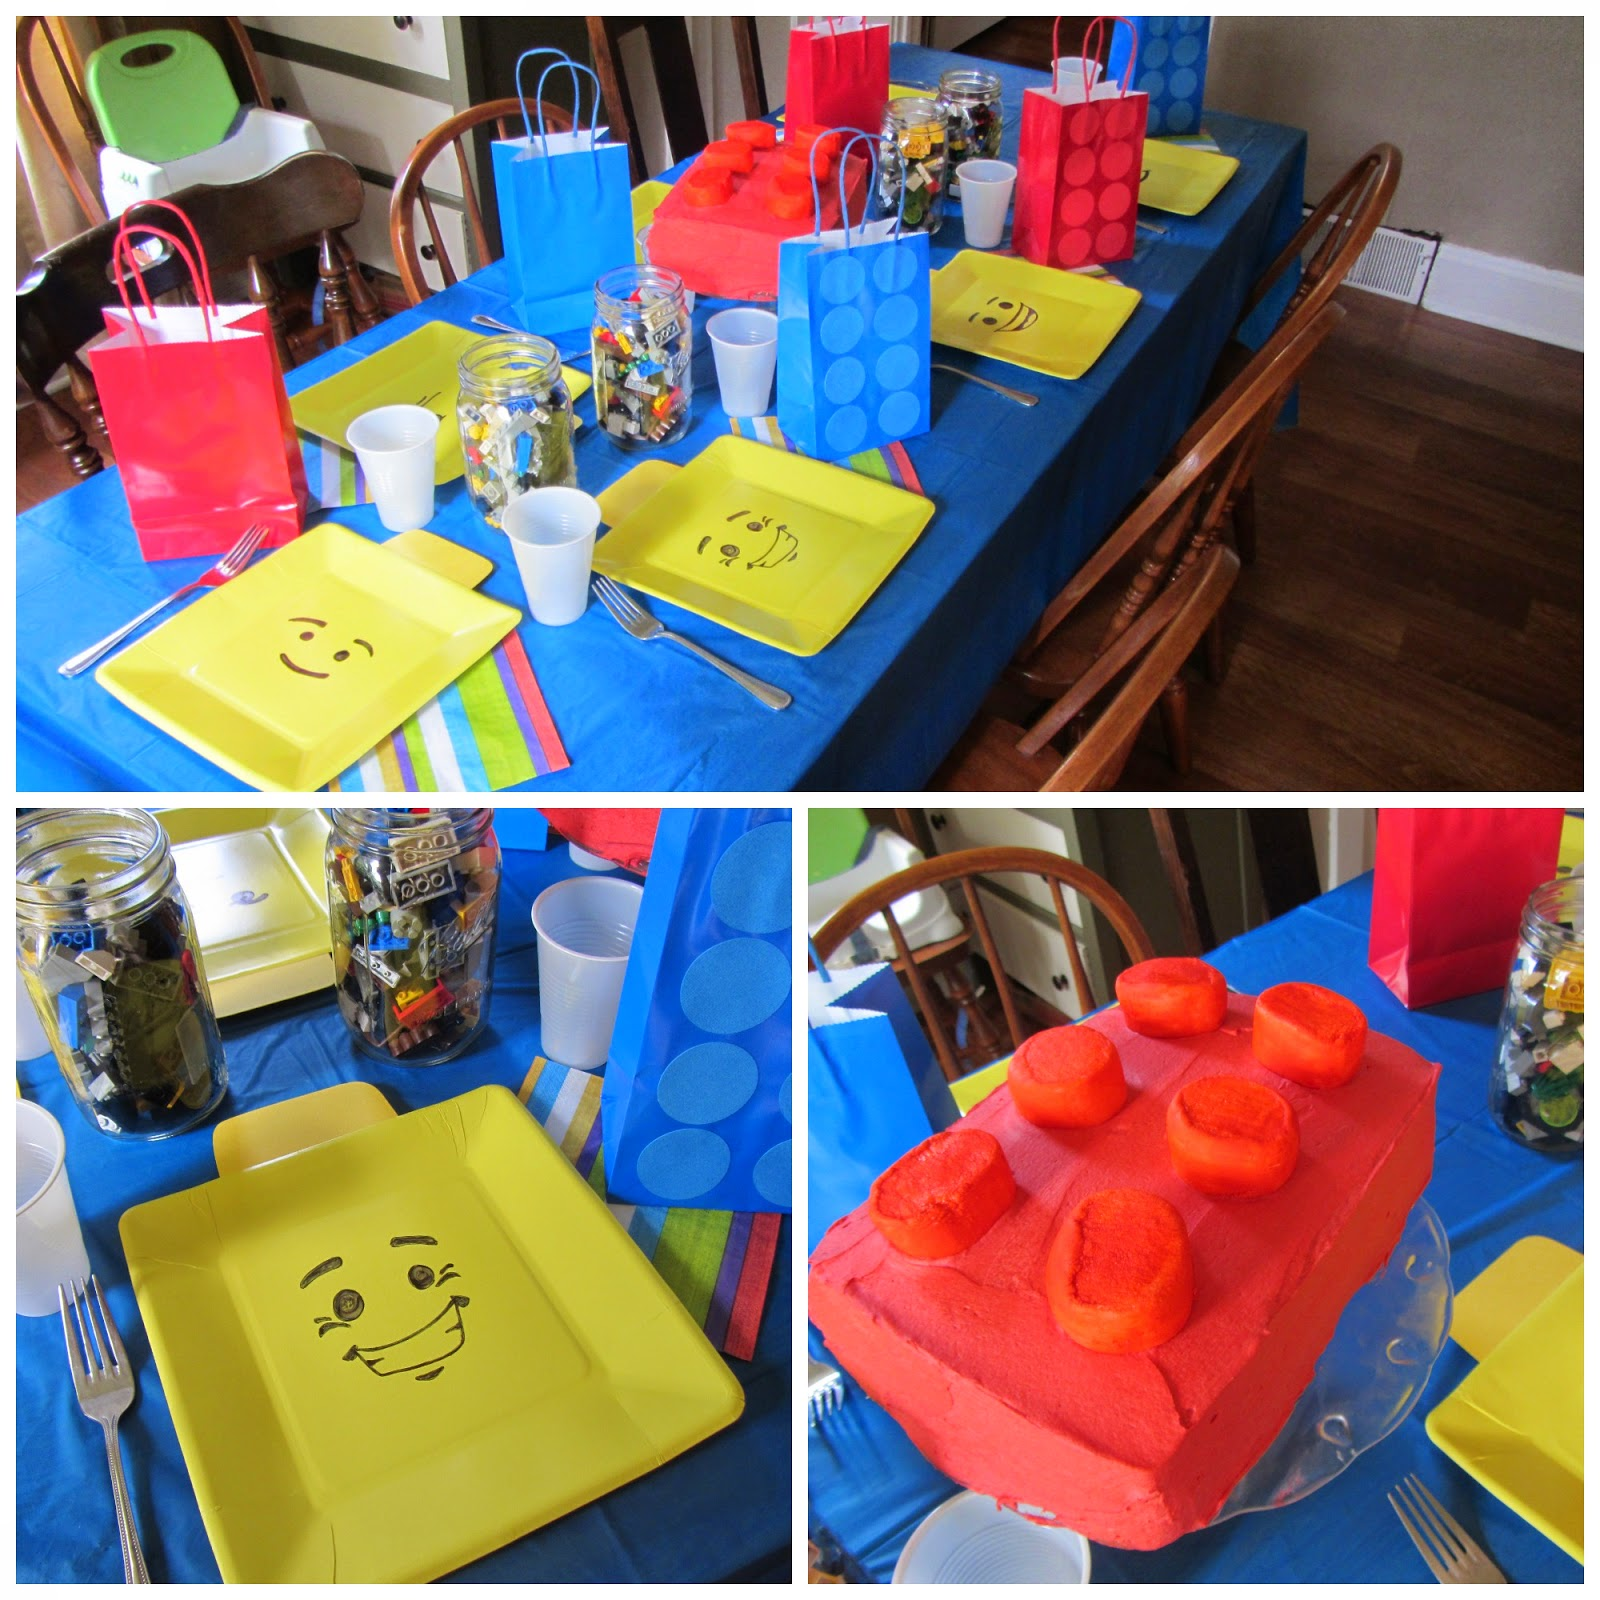 The Unlikely Homeschool Lego Party